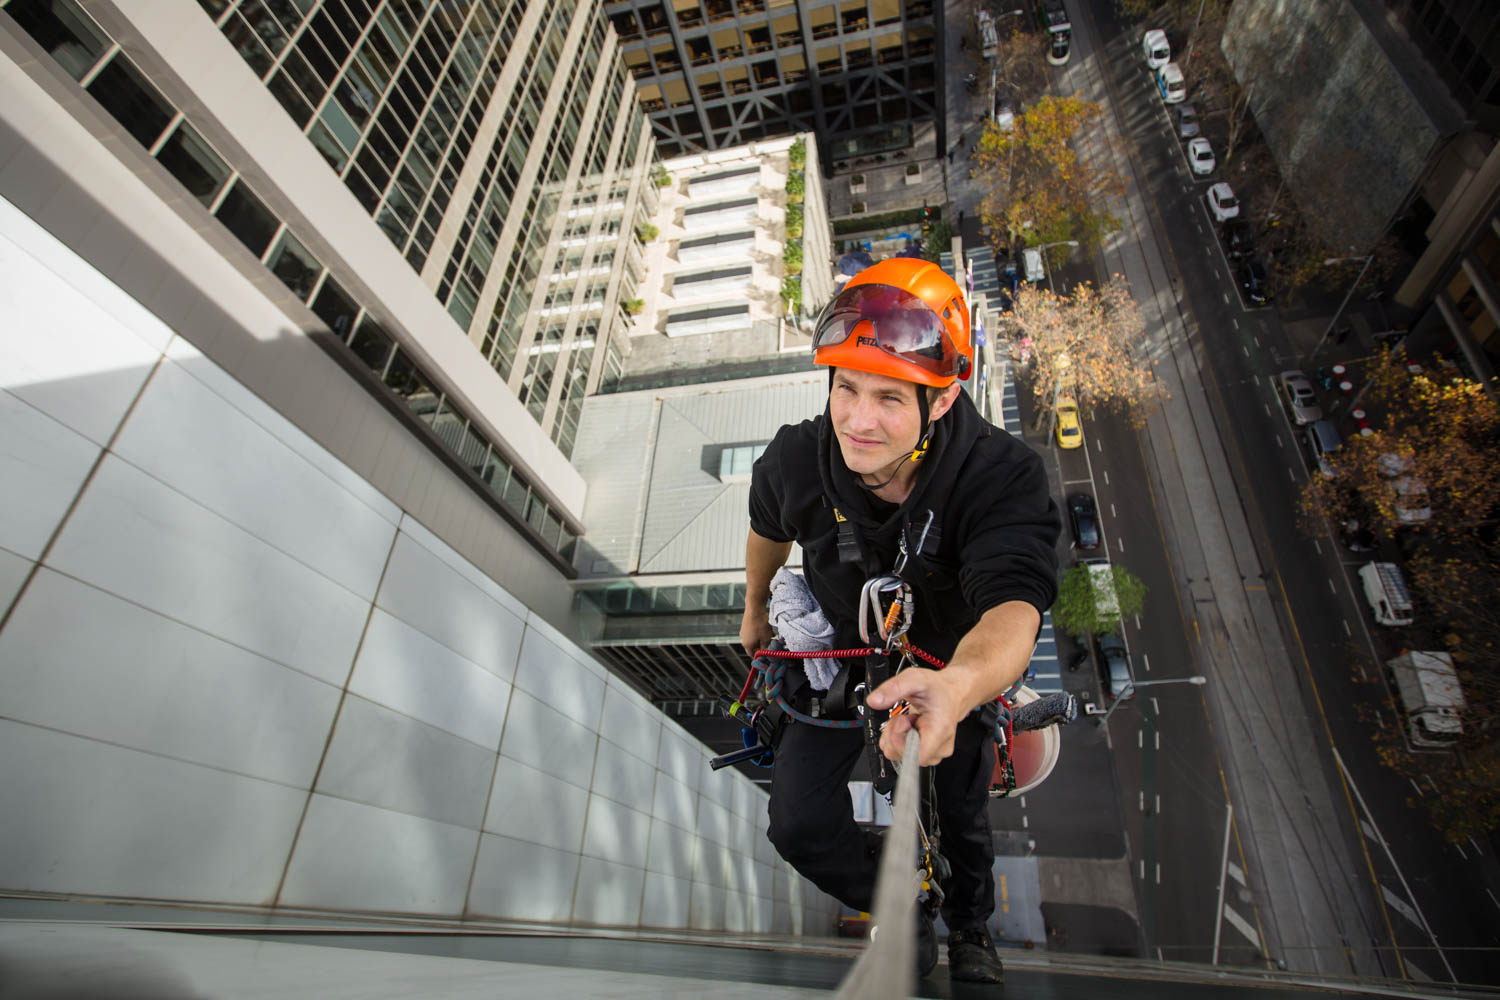 melbourne commercial window washer hanging over edge of building